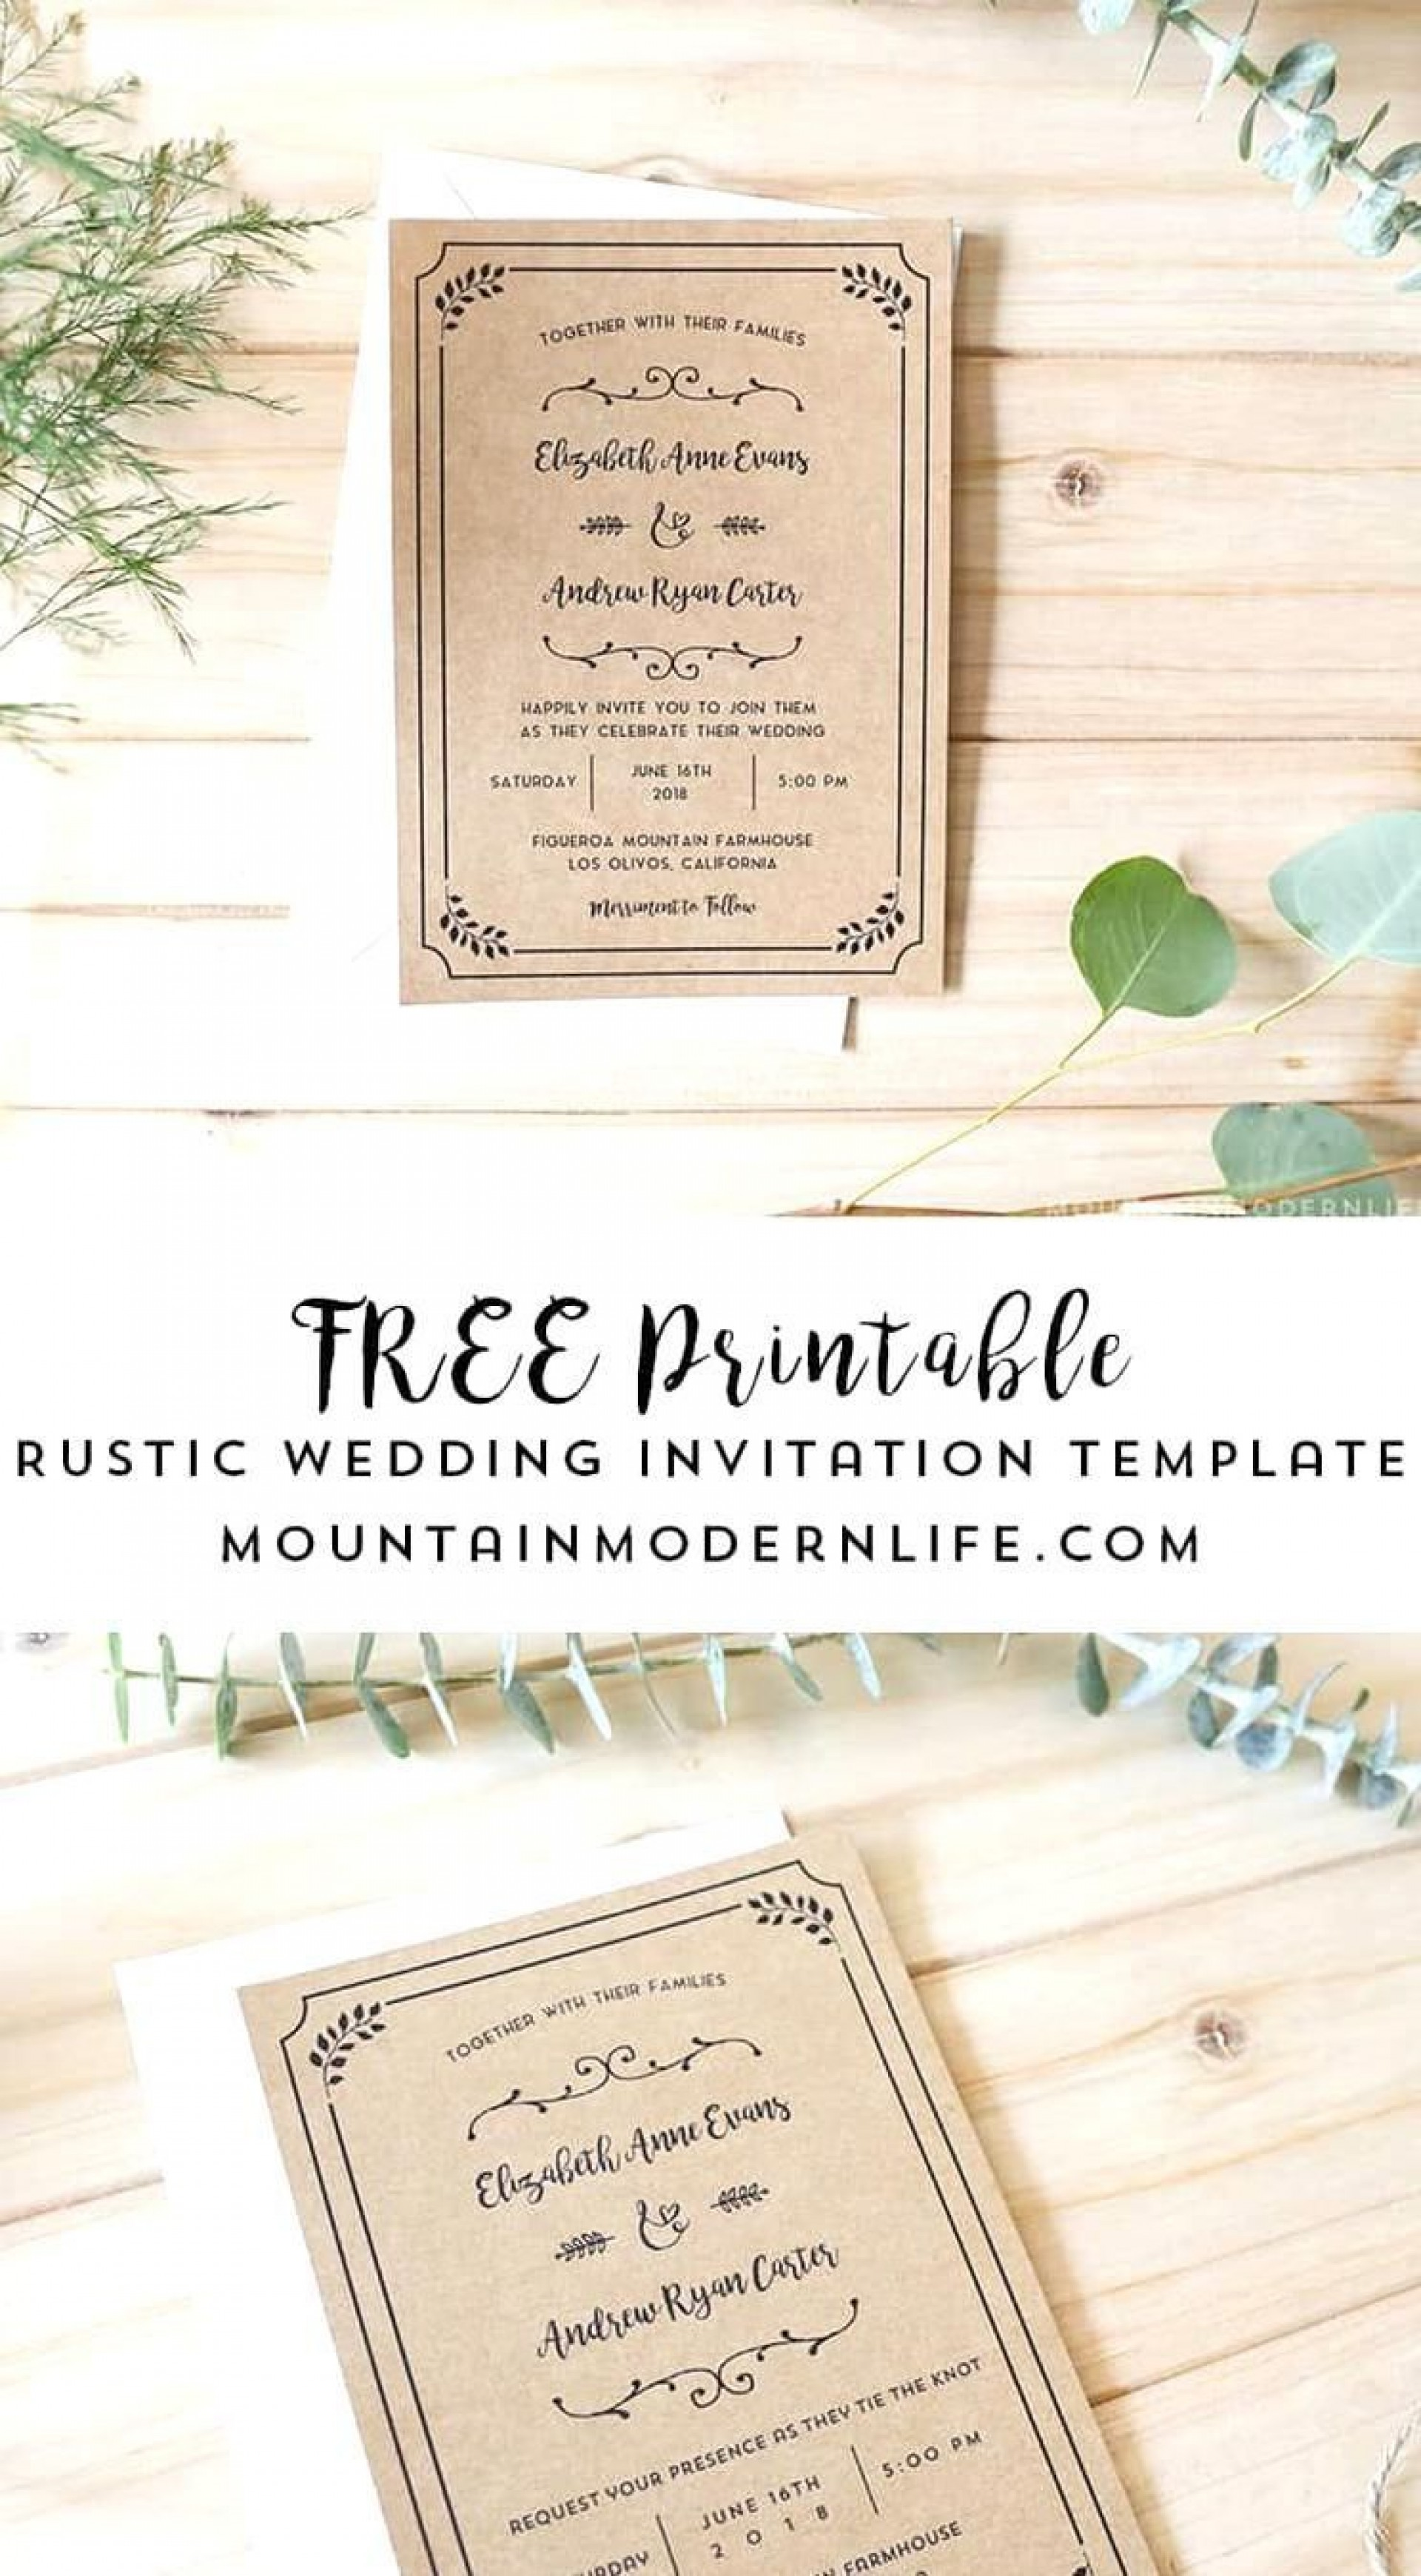 004 Stirring Rustic Wedding Invitation Template Photo  Templates Free For Word Maker Photoshop1920